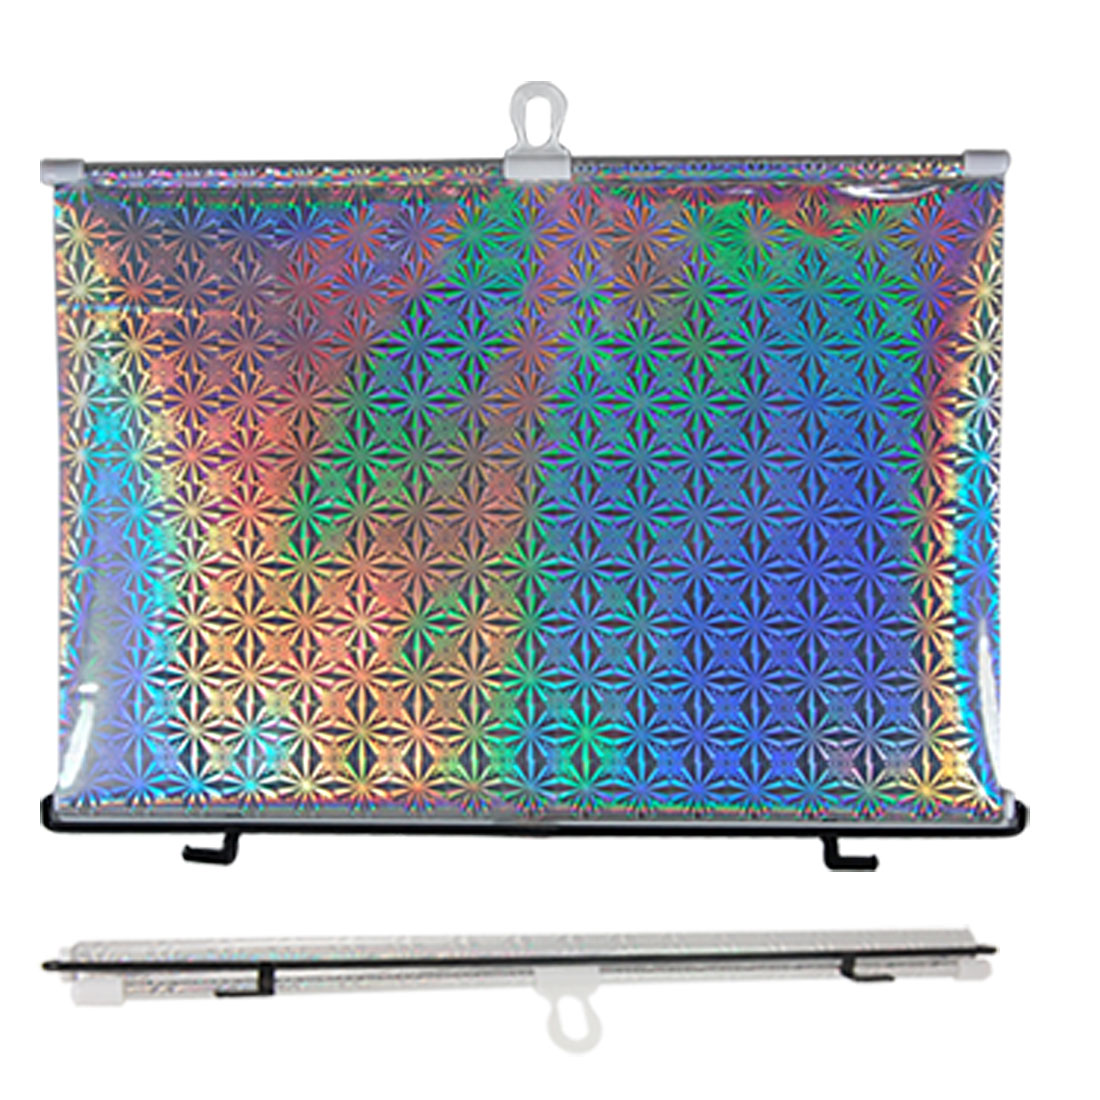 Car Window 45 x 125cm Roll Up Sun Shade w Suction Cup - image 1 of 1